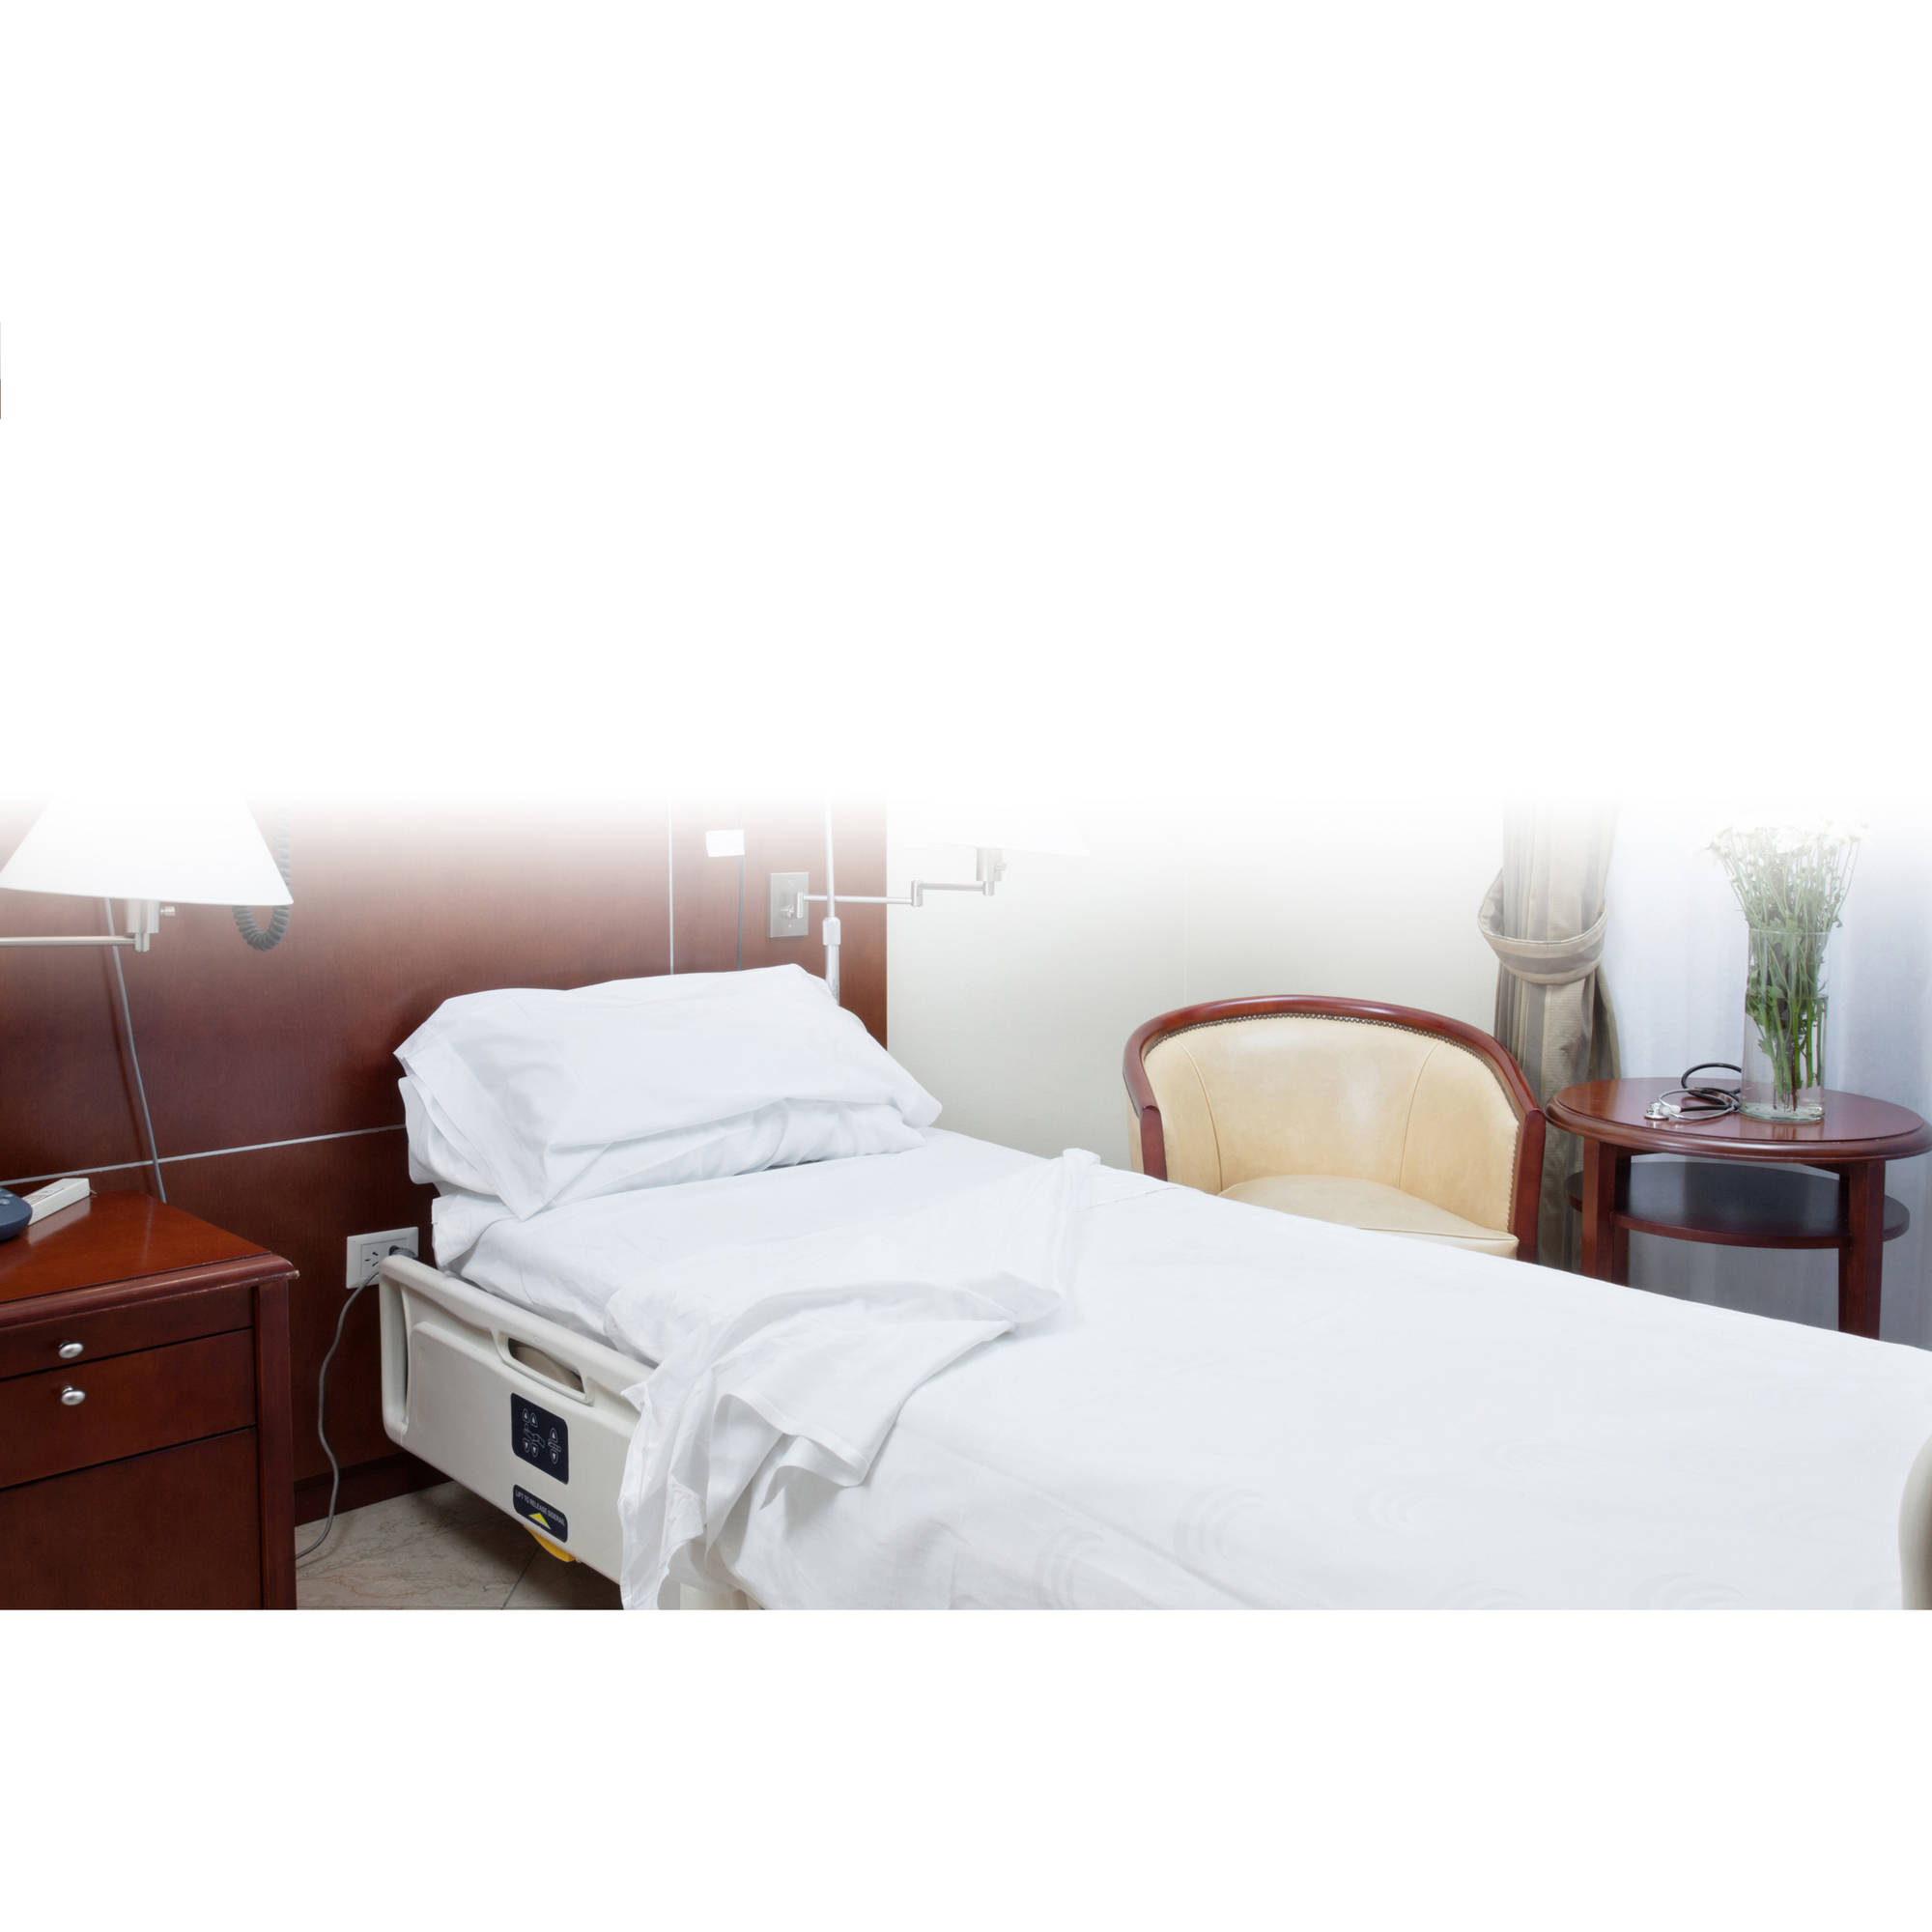 Fitted Bed Sheet for Hospitals in Jersey Knit